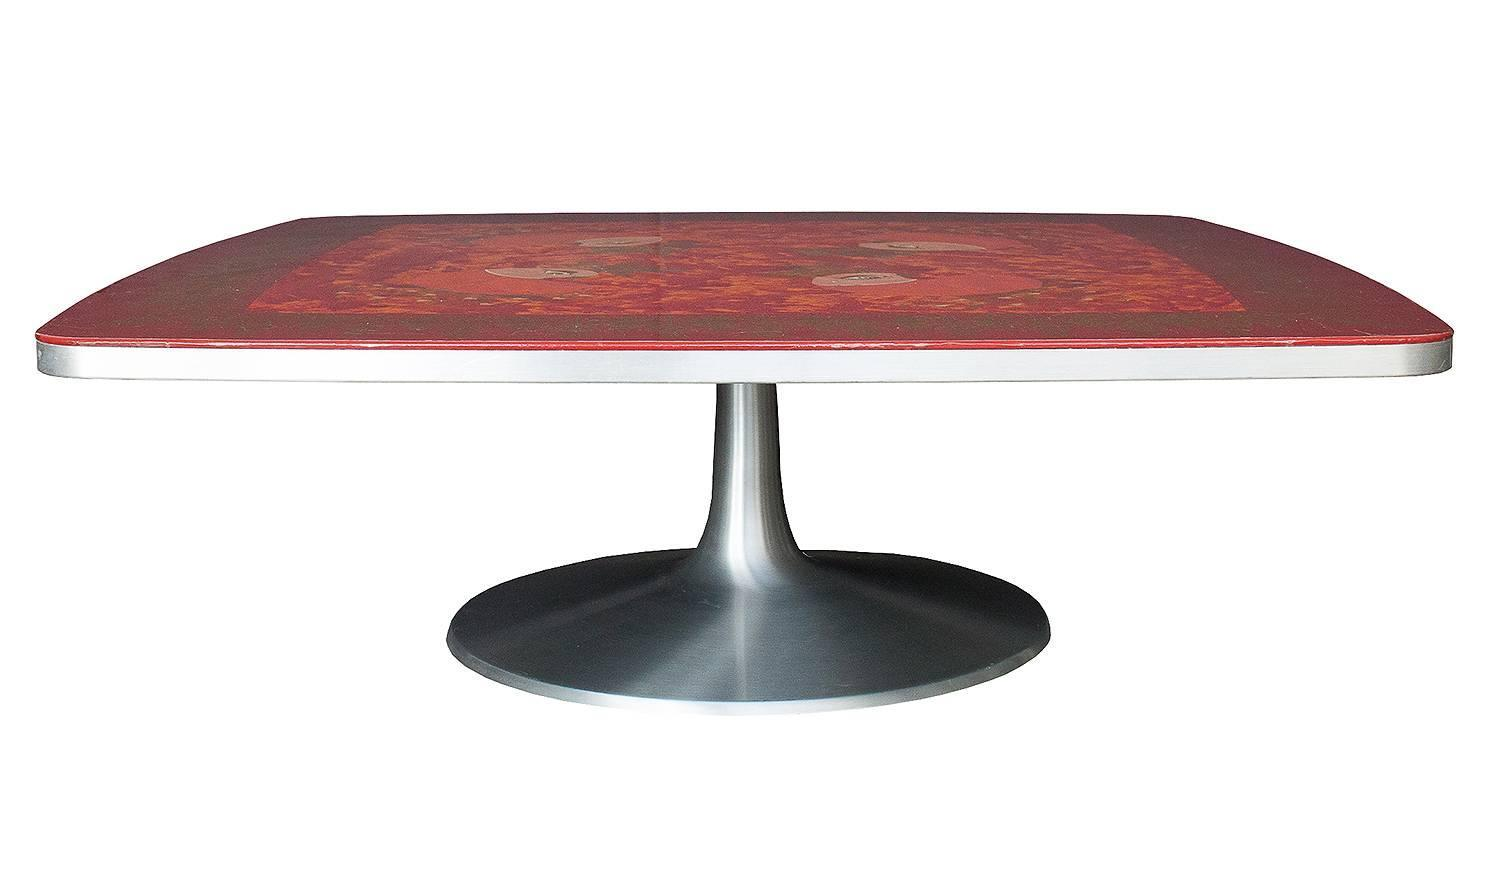 Pedestal Coffee Table By Bjorn Wiinblad And Mygge For Poul Cadovius At 1stdibs